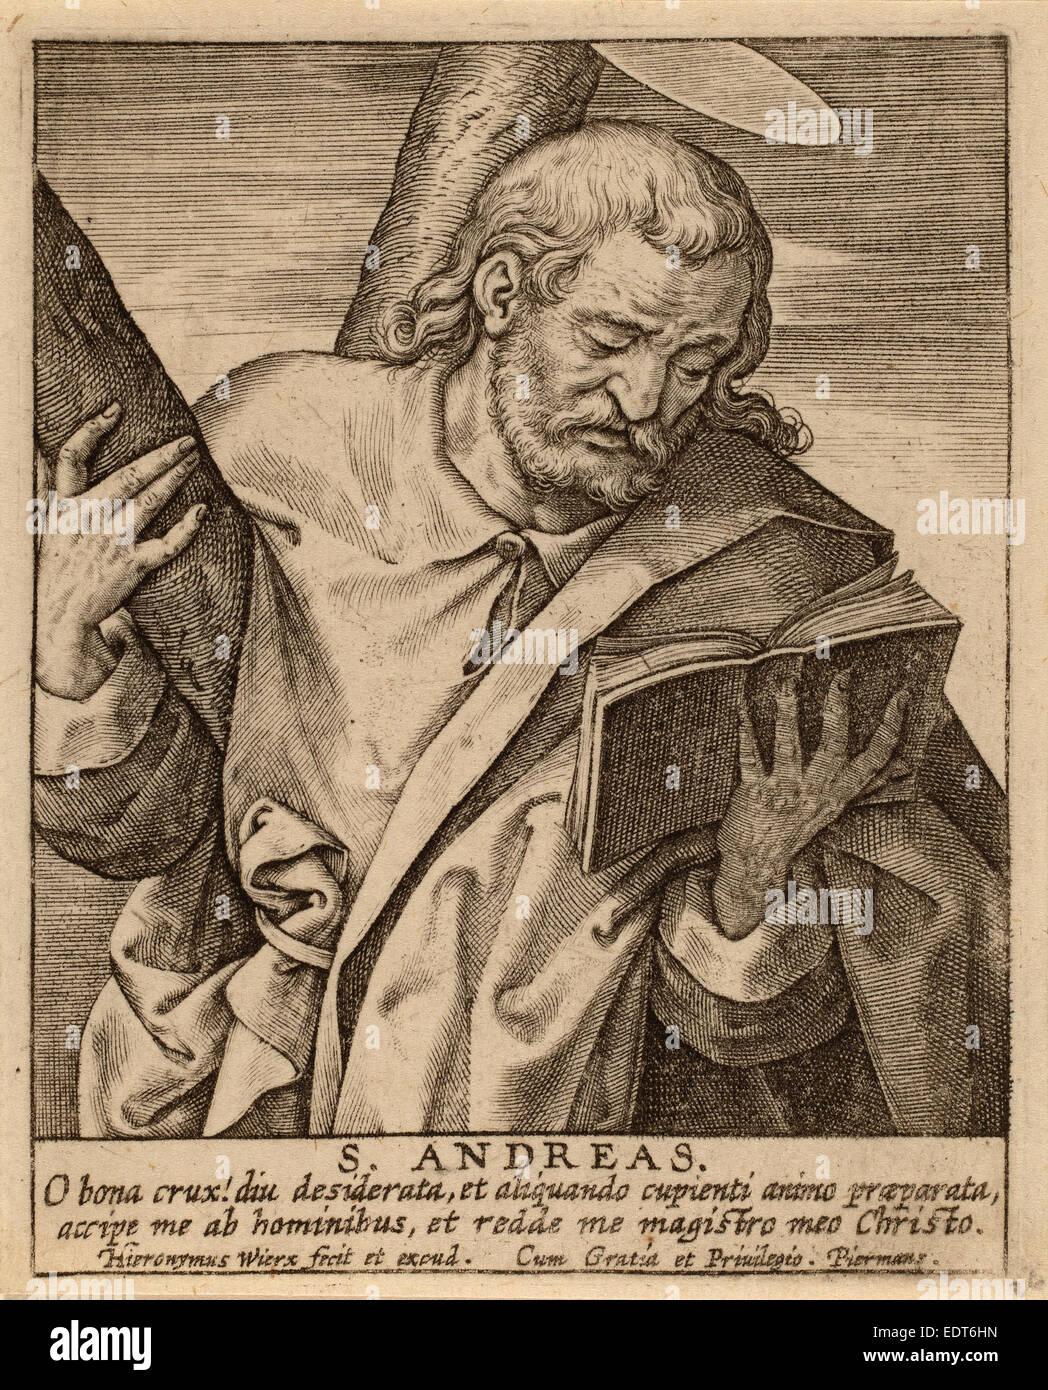 Hieronymus Wierix (flamand), ch. 1553 - 1619), S. Andreas, gravure Photo Stock